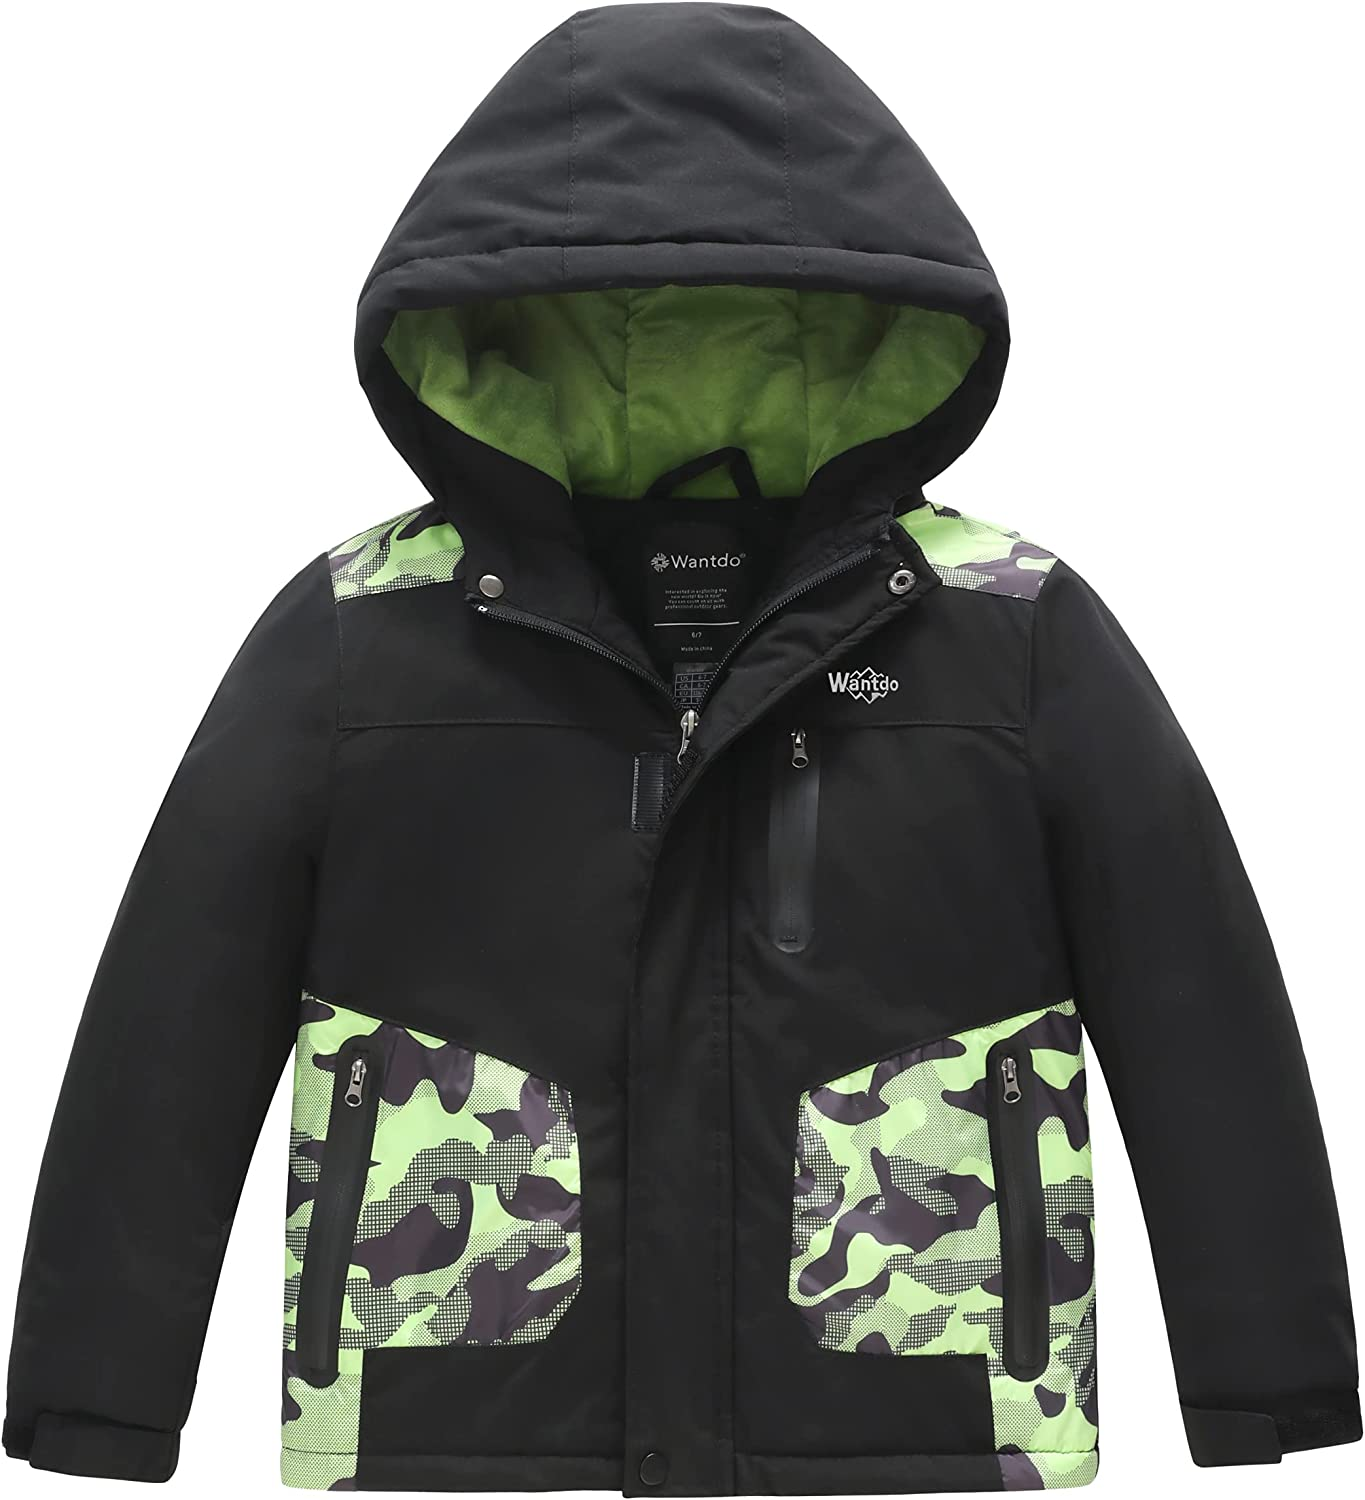 Super sale period limited Wantdo Boy's Waterproof Skiing Insulated Jacket 2021 spring and summer new Snowboard